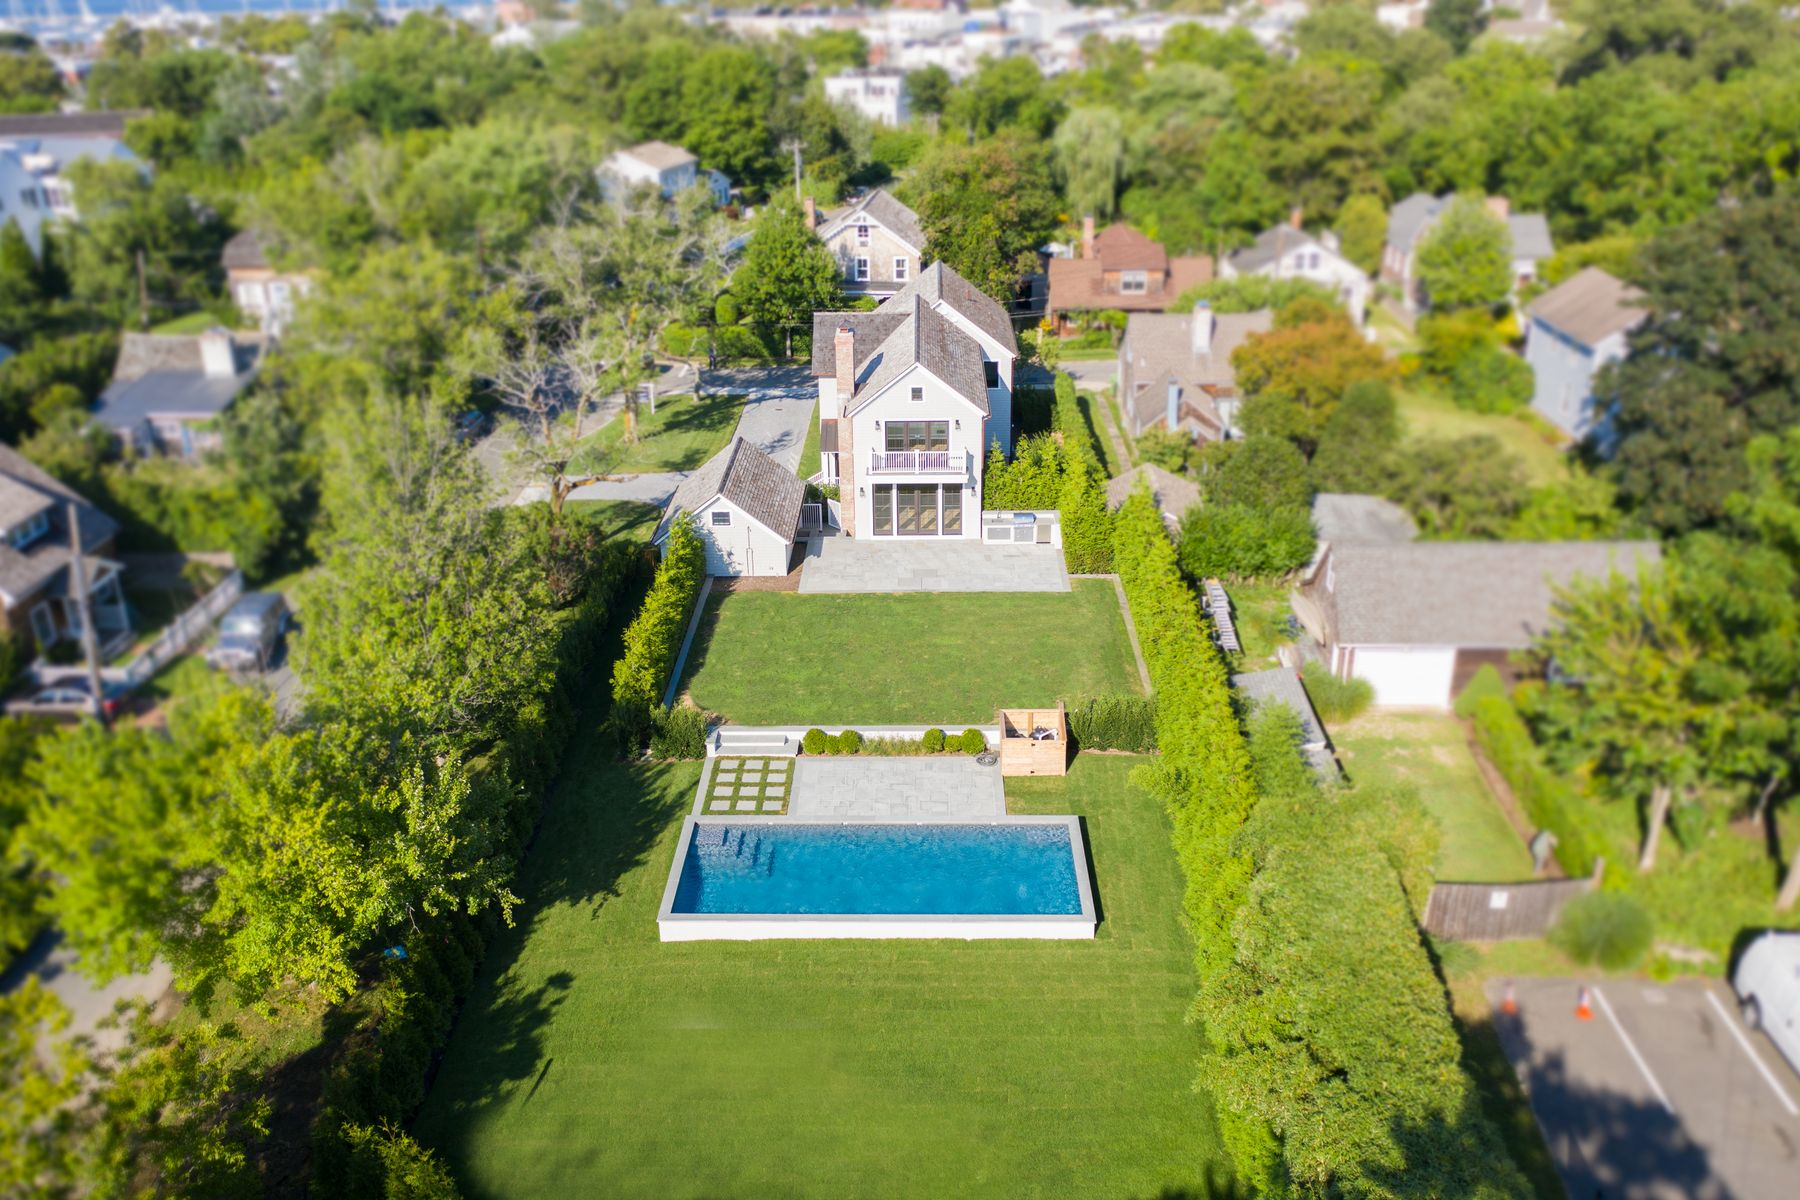 Single Family Homes for Sale at Rare Find Sag Harbor Historic District 59 Garden Street Sag Harbor, New York 11963 United States